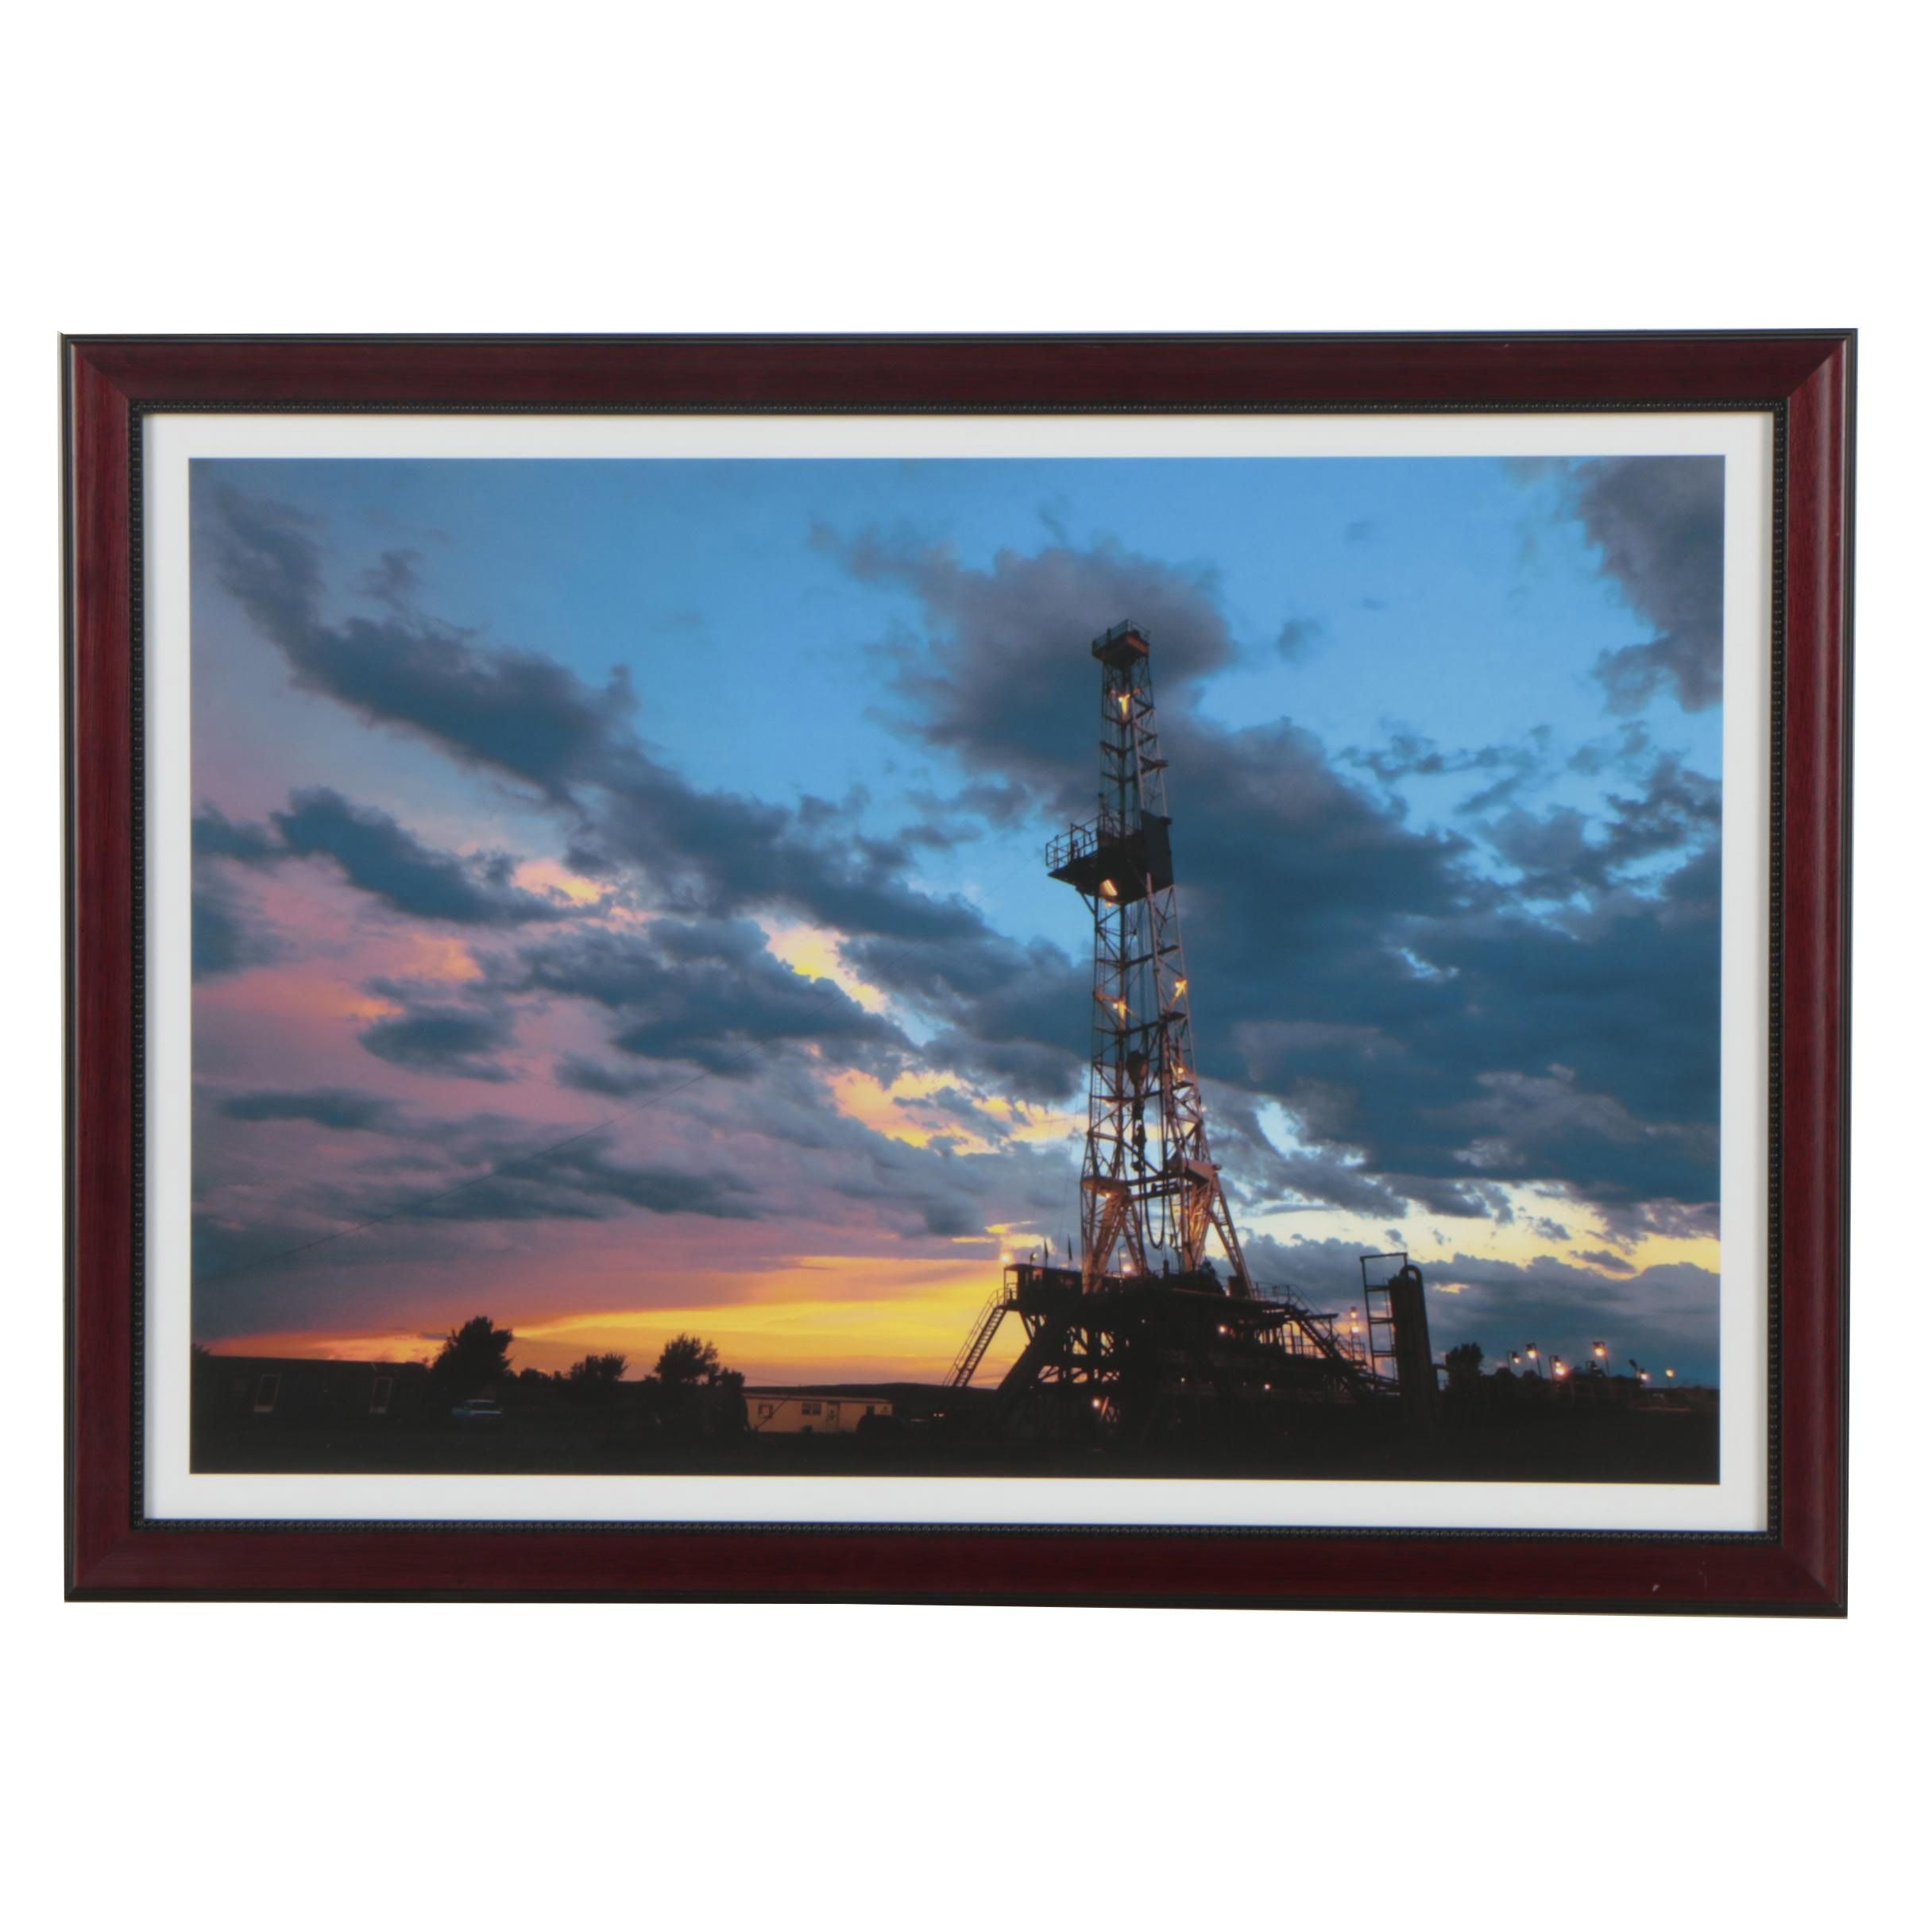 "Jeff Heger Digital Photograph ""Sunset, Oil Rig and Cloudy Skies"""